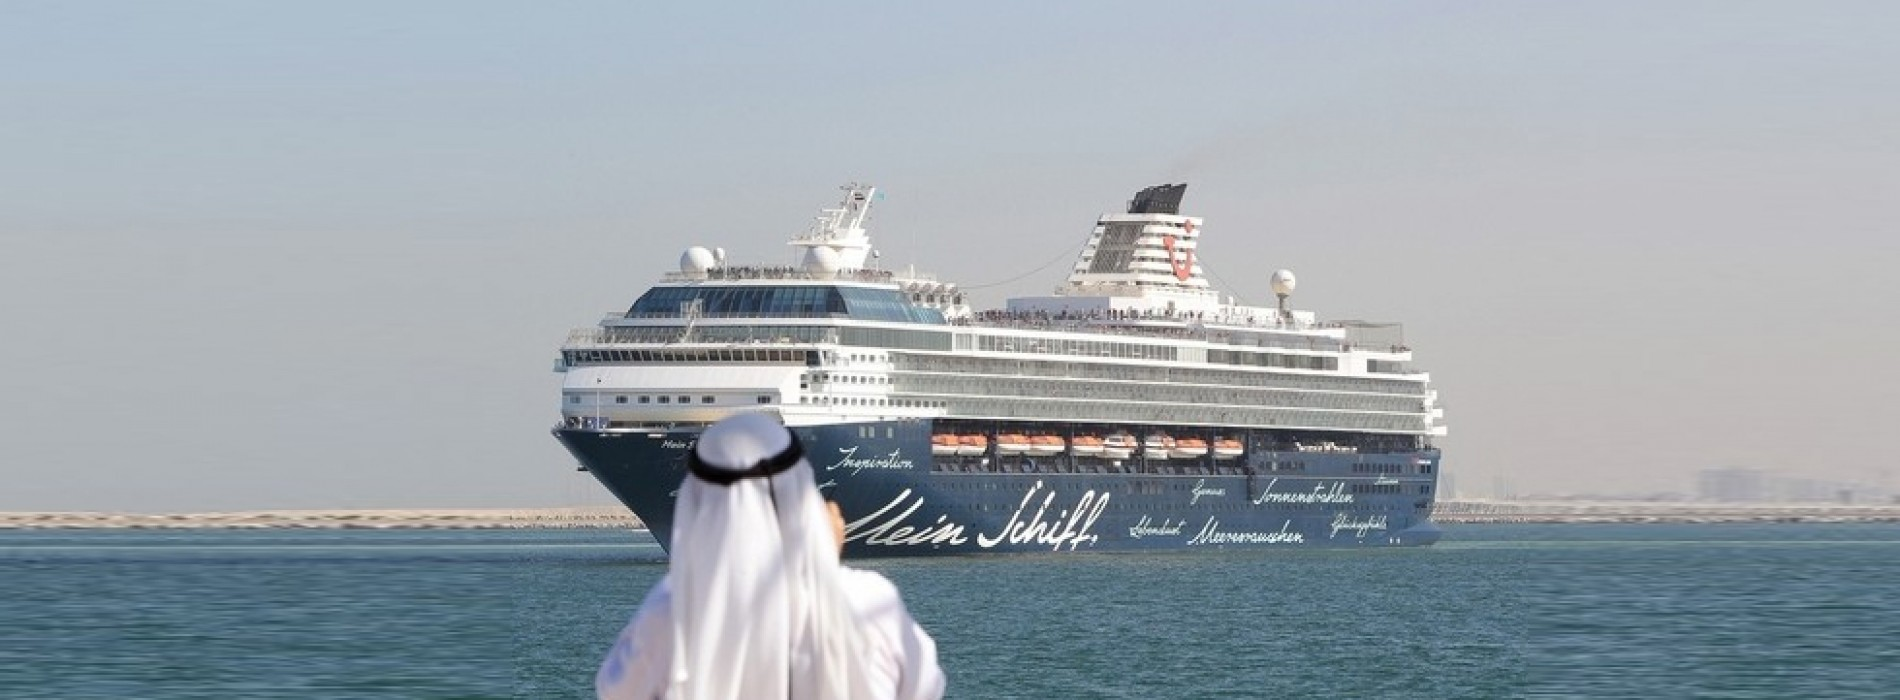 Abu Dhabi cruise tourism rides wave of success